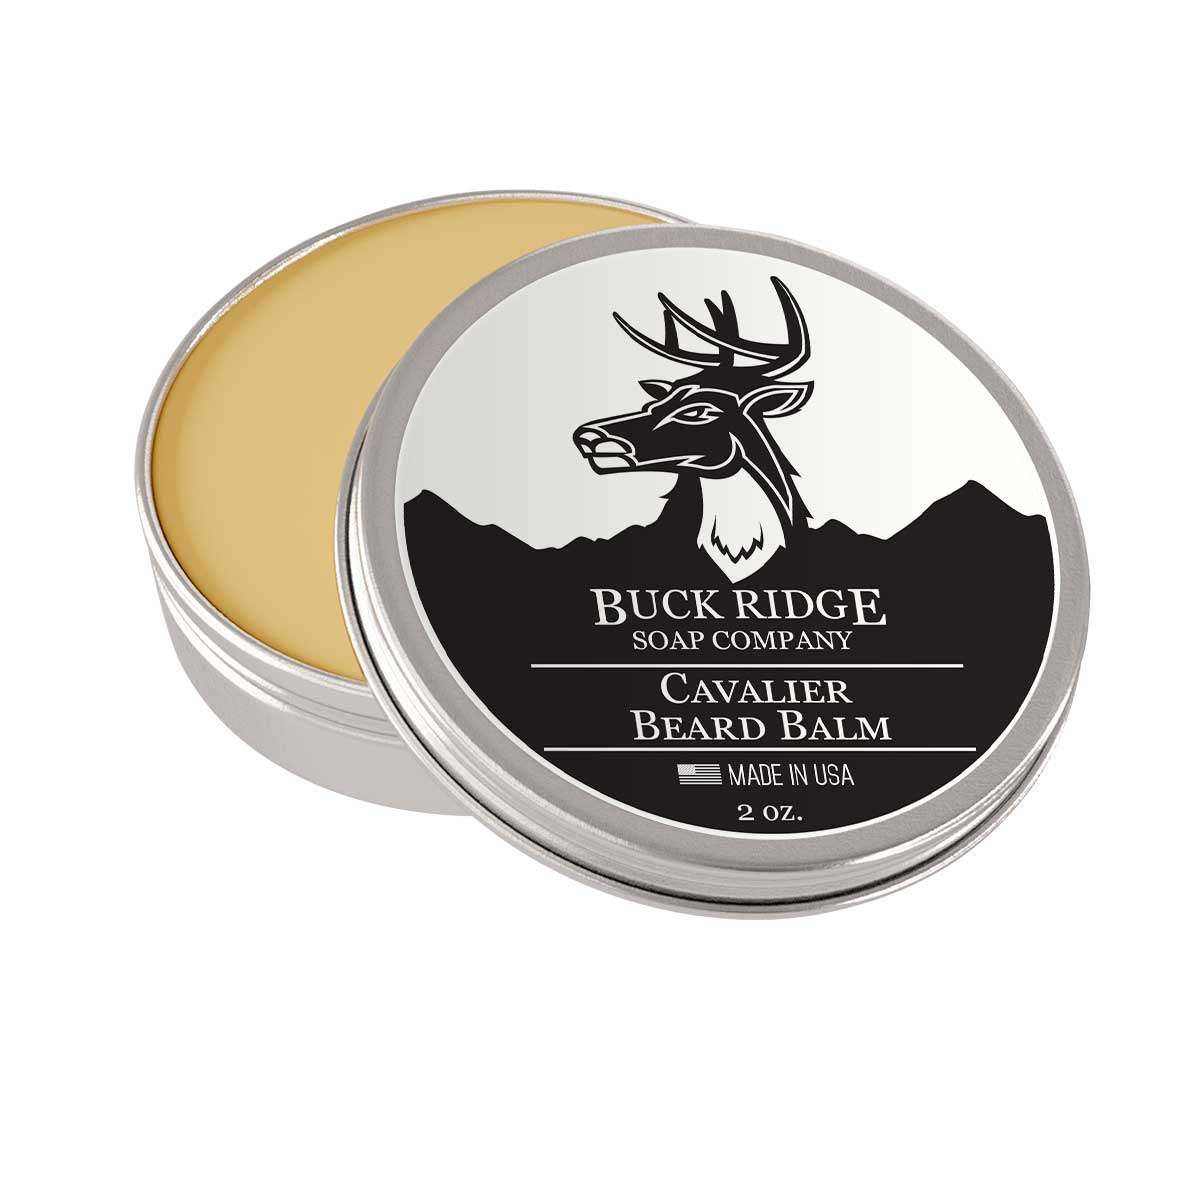 Cavalier Beard Balm - Wands Of Nature